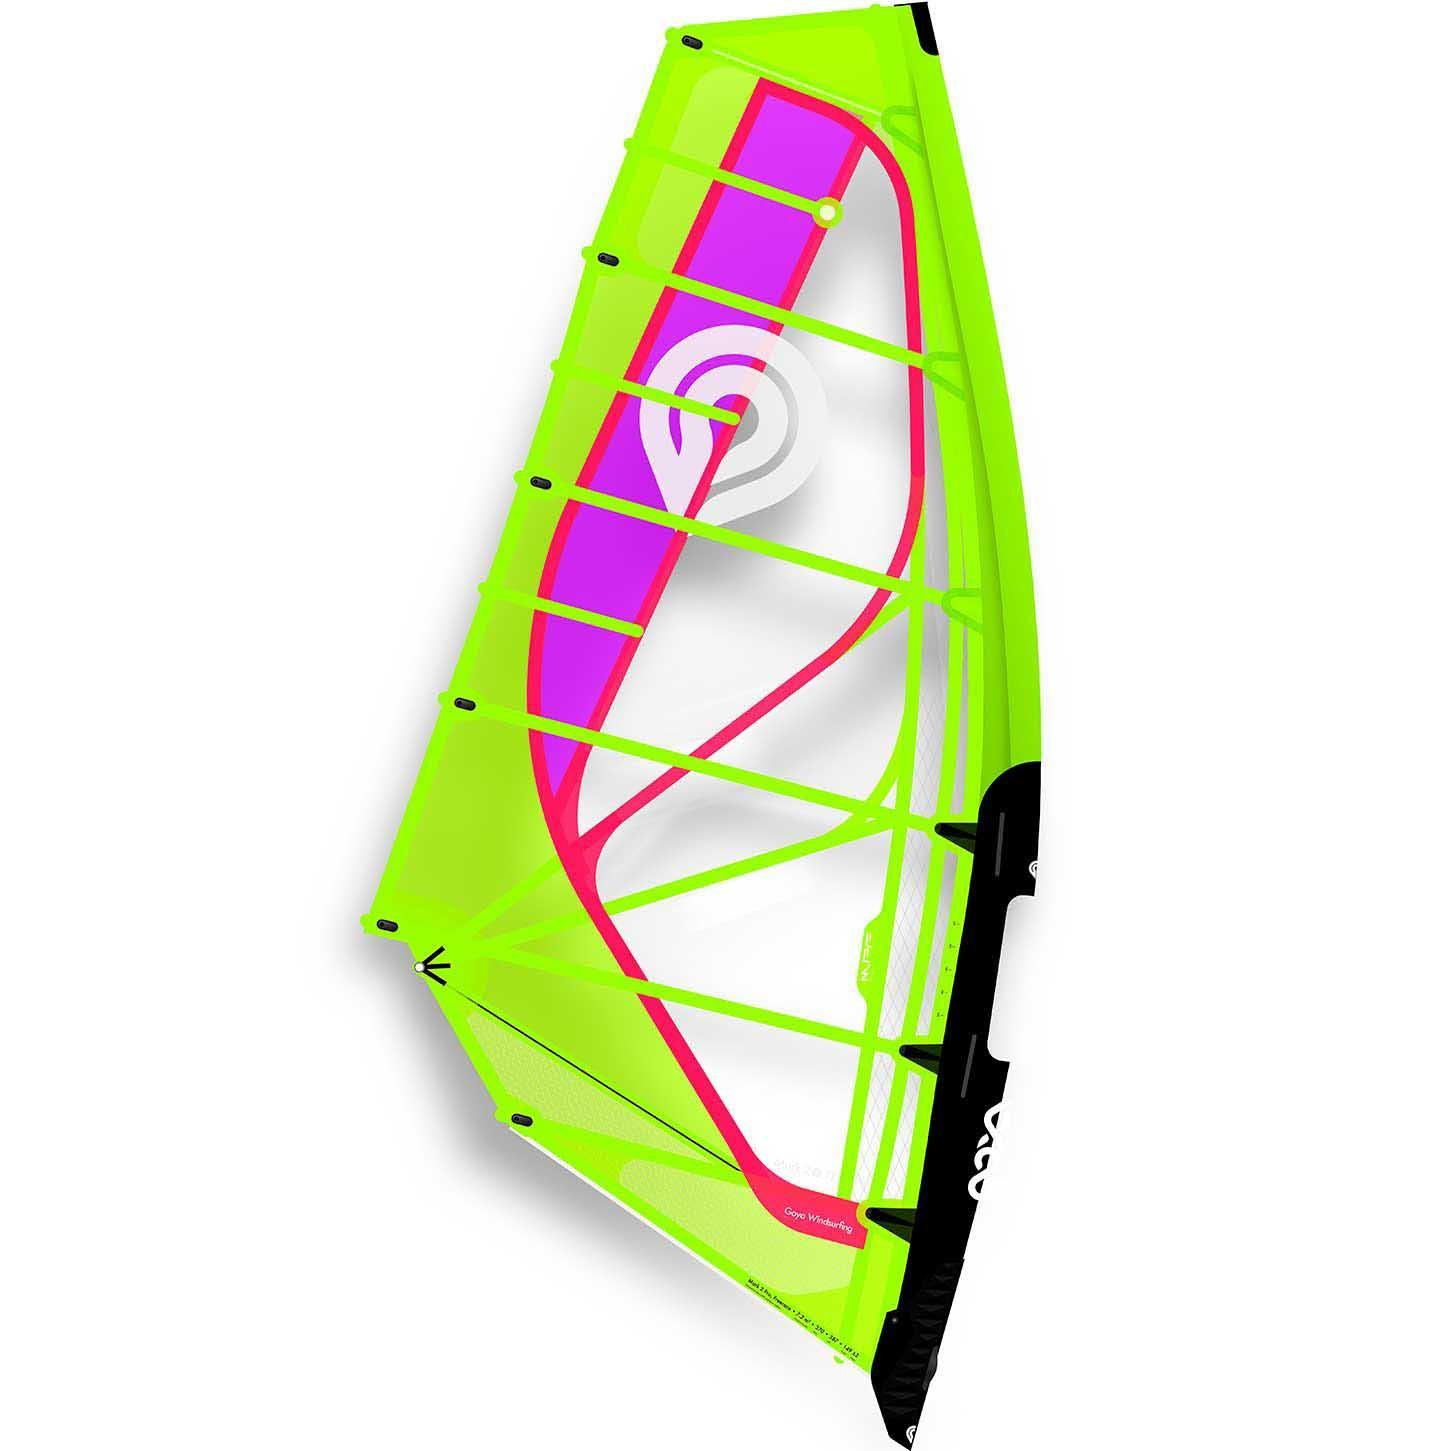 2020 GOYA Mark 2 Pro Windsurfing Sail-Big Winds